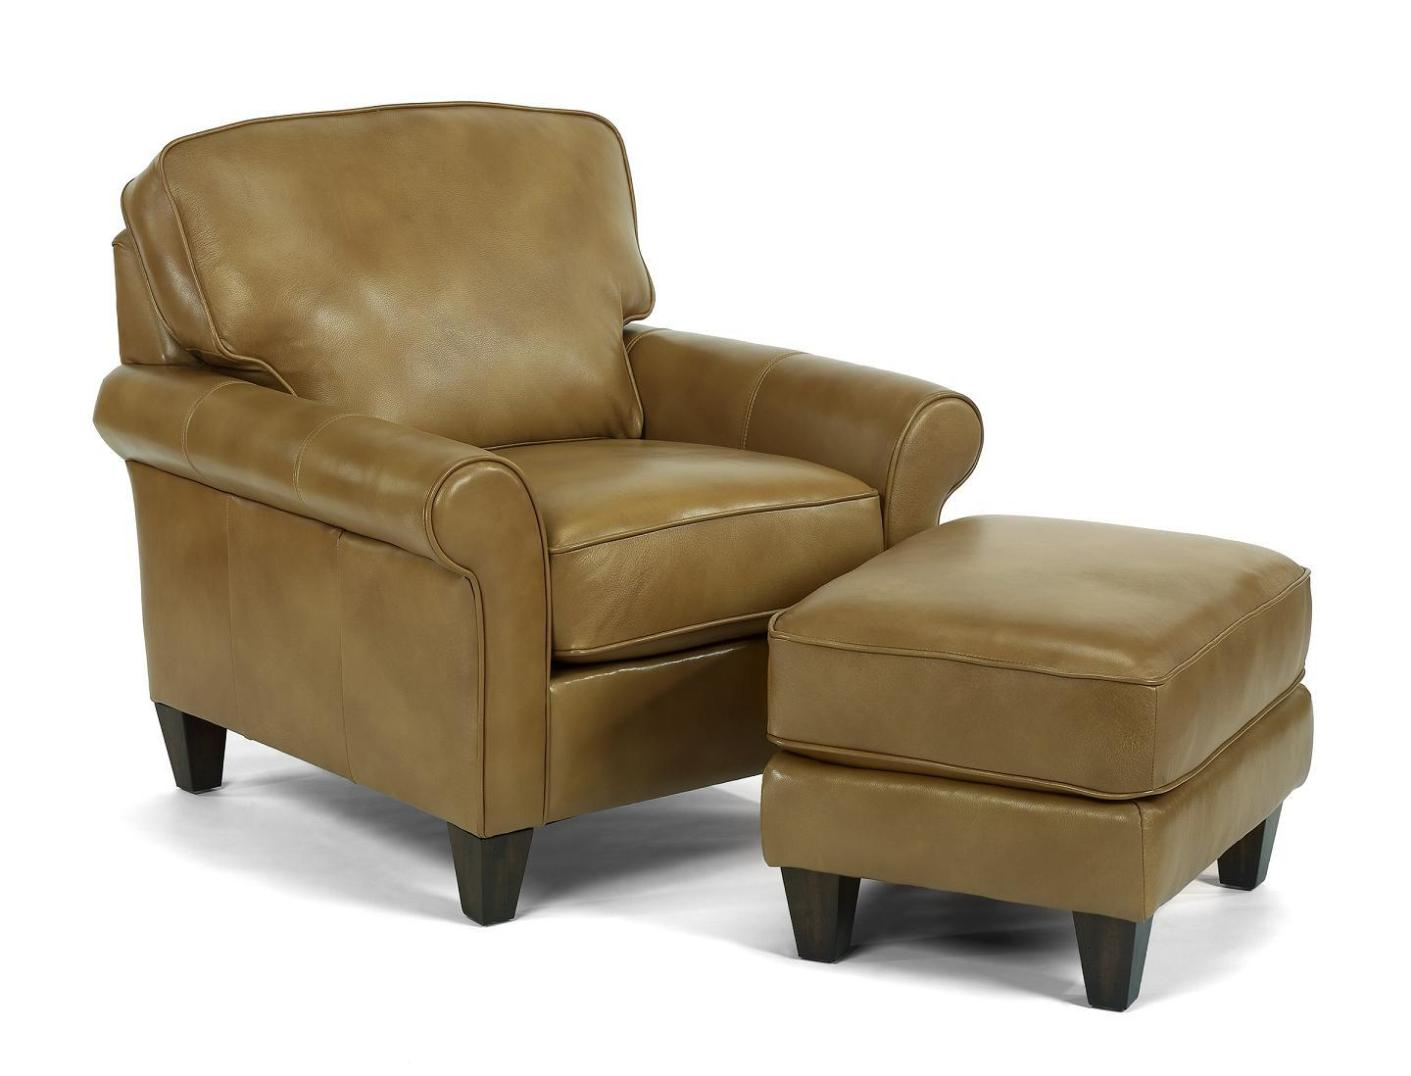 Image of: Leather Oversized Chair And Ottoman